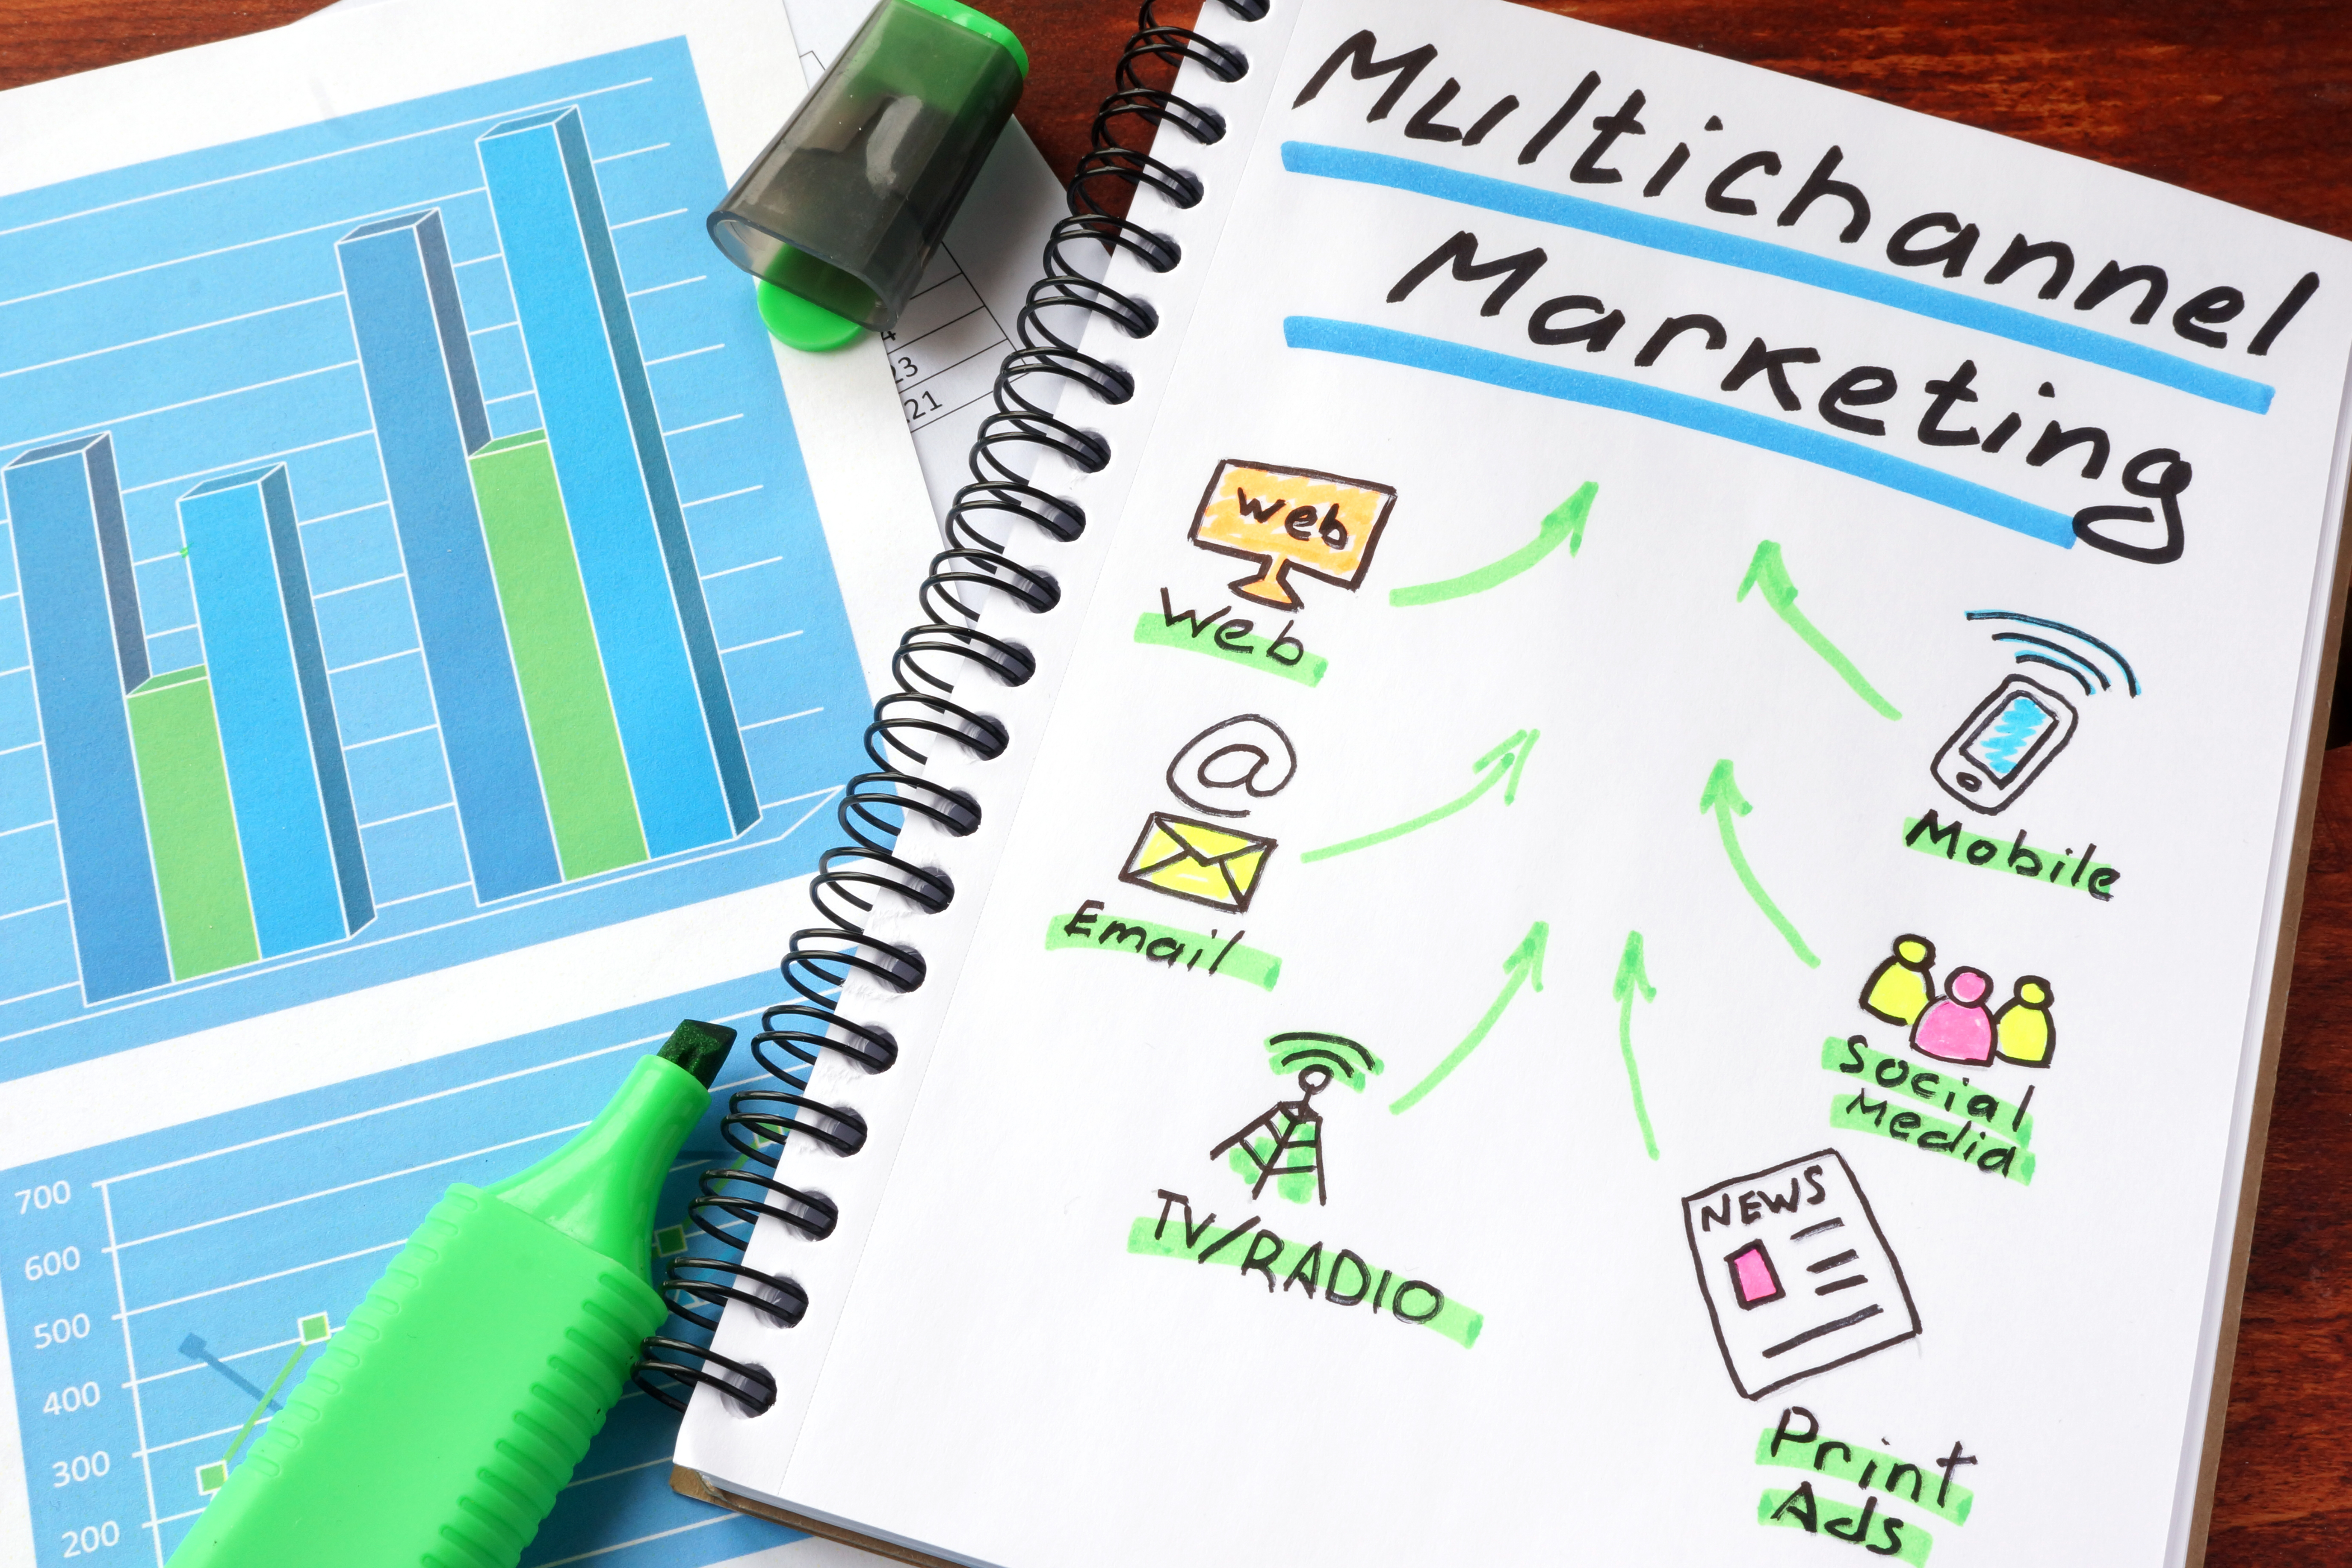 Choosing the best marketing channel for your business